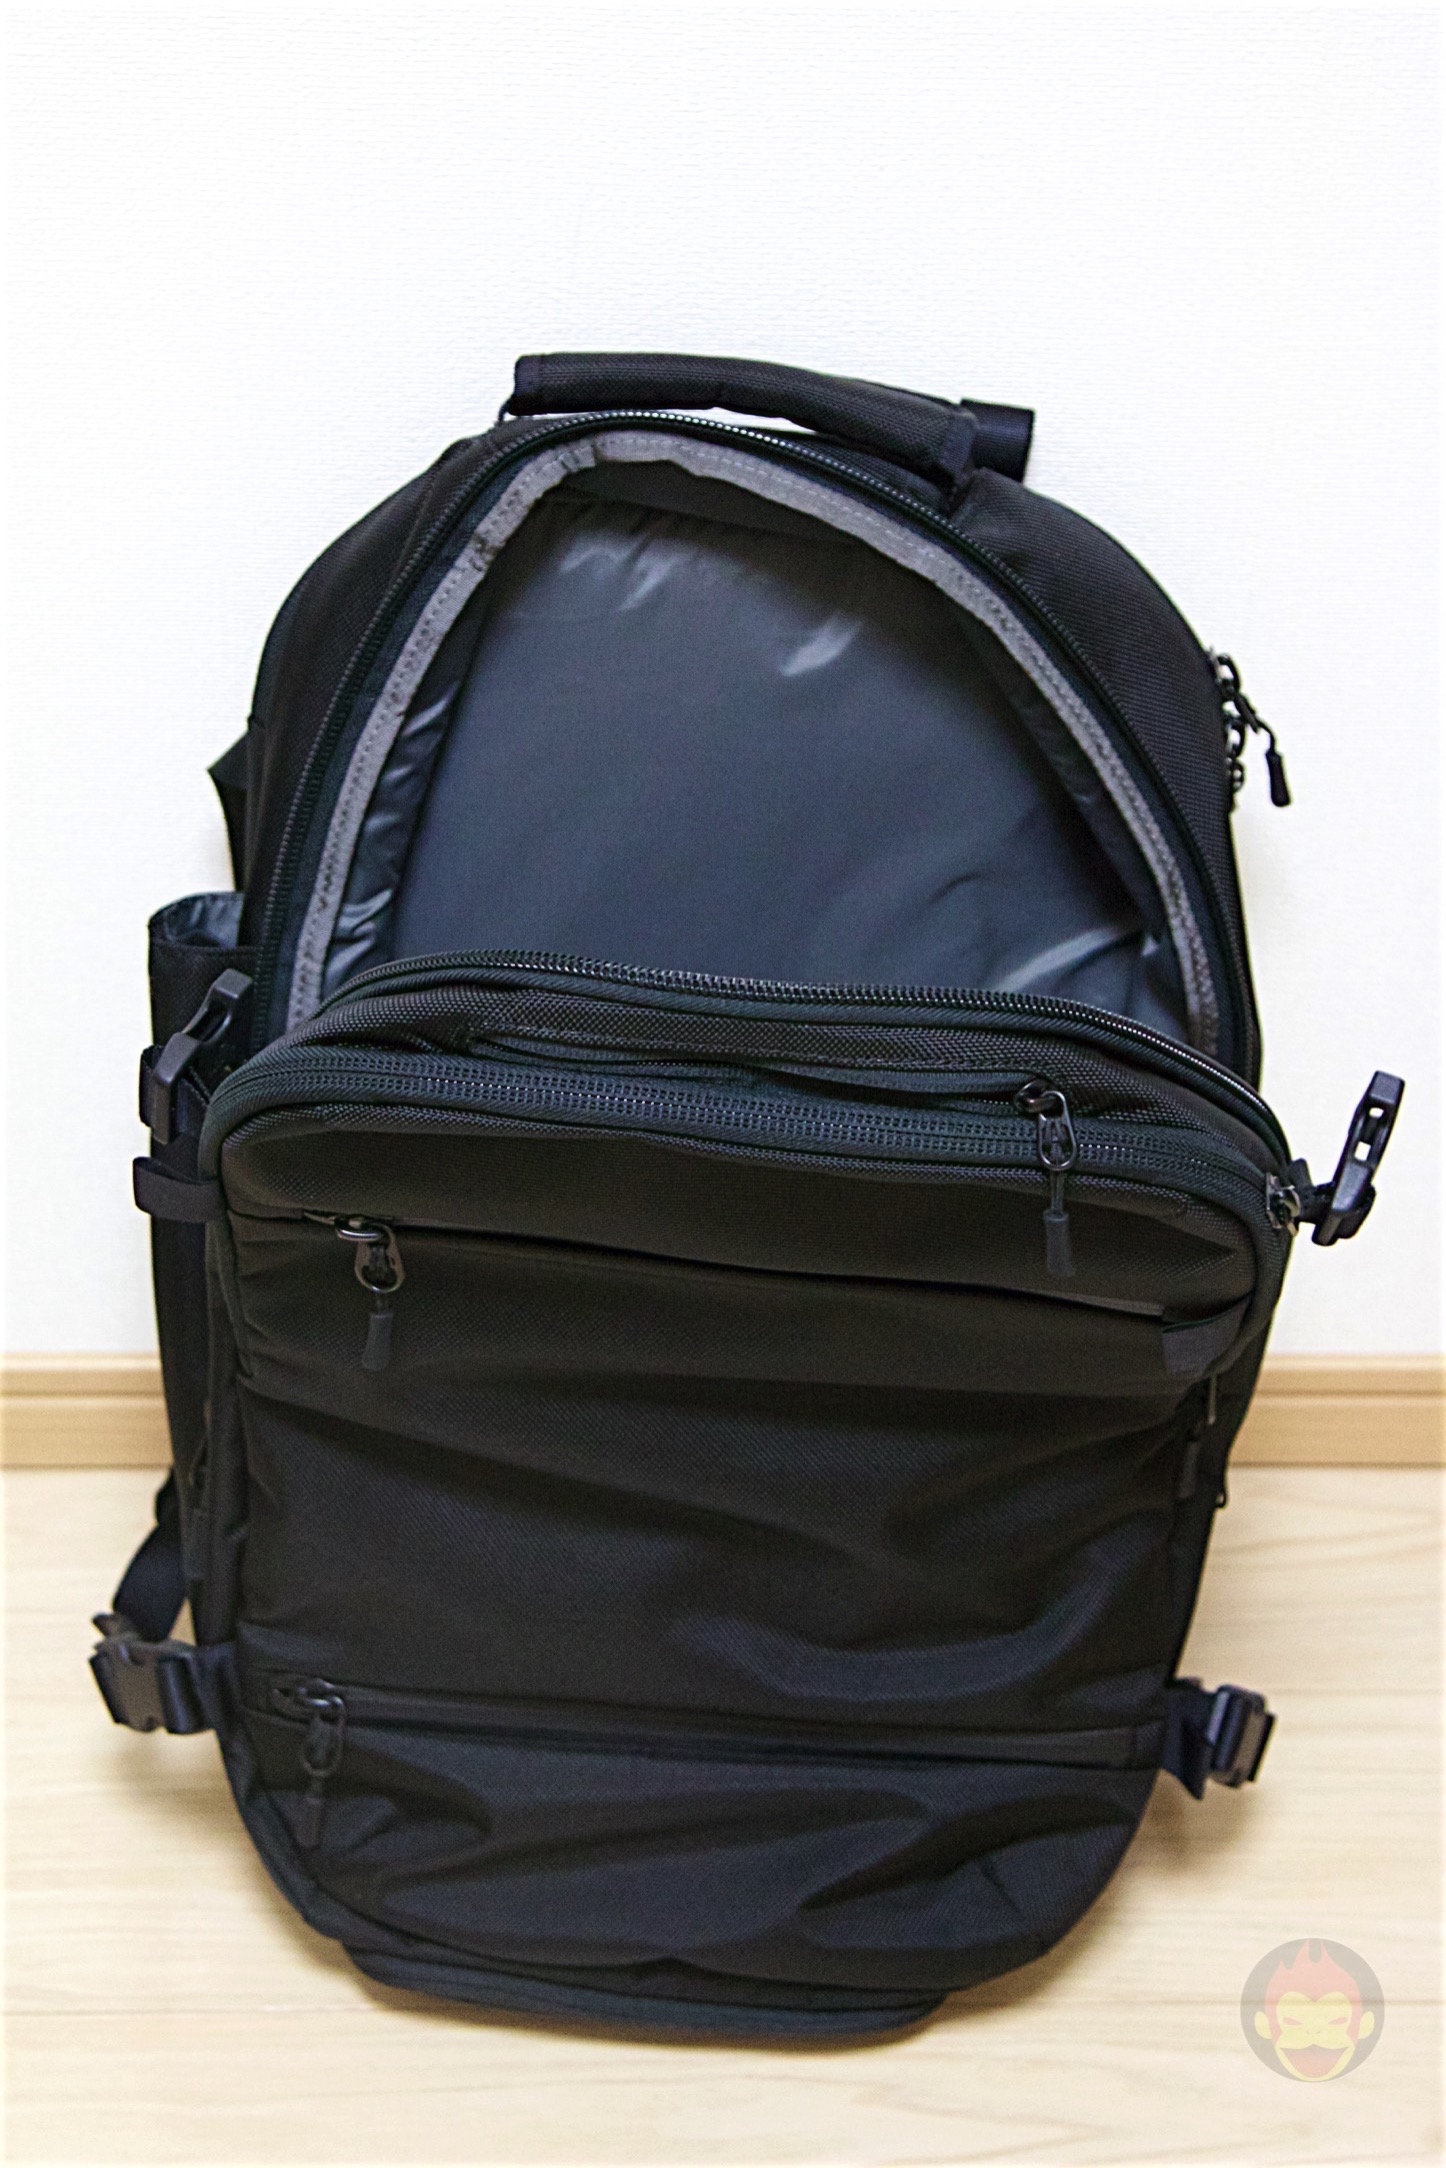 Aer-Travel-BackPack-on-Kickstarter-23.jpg